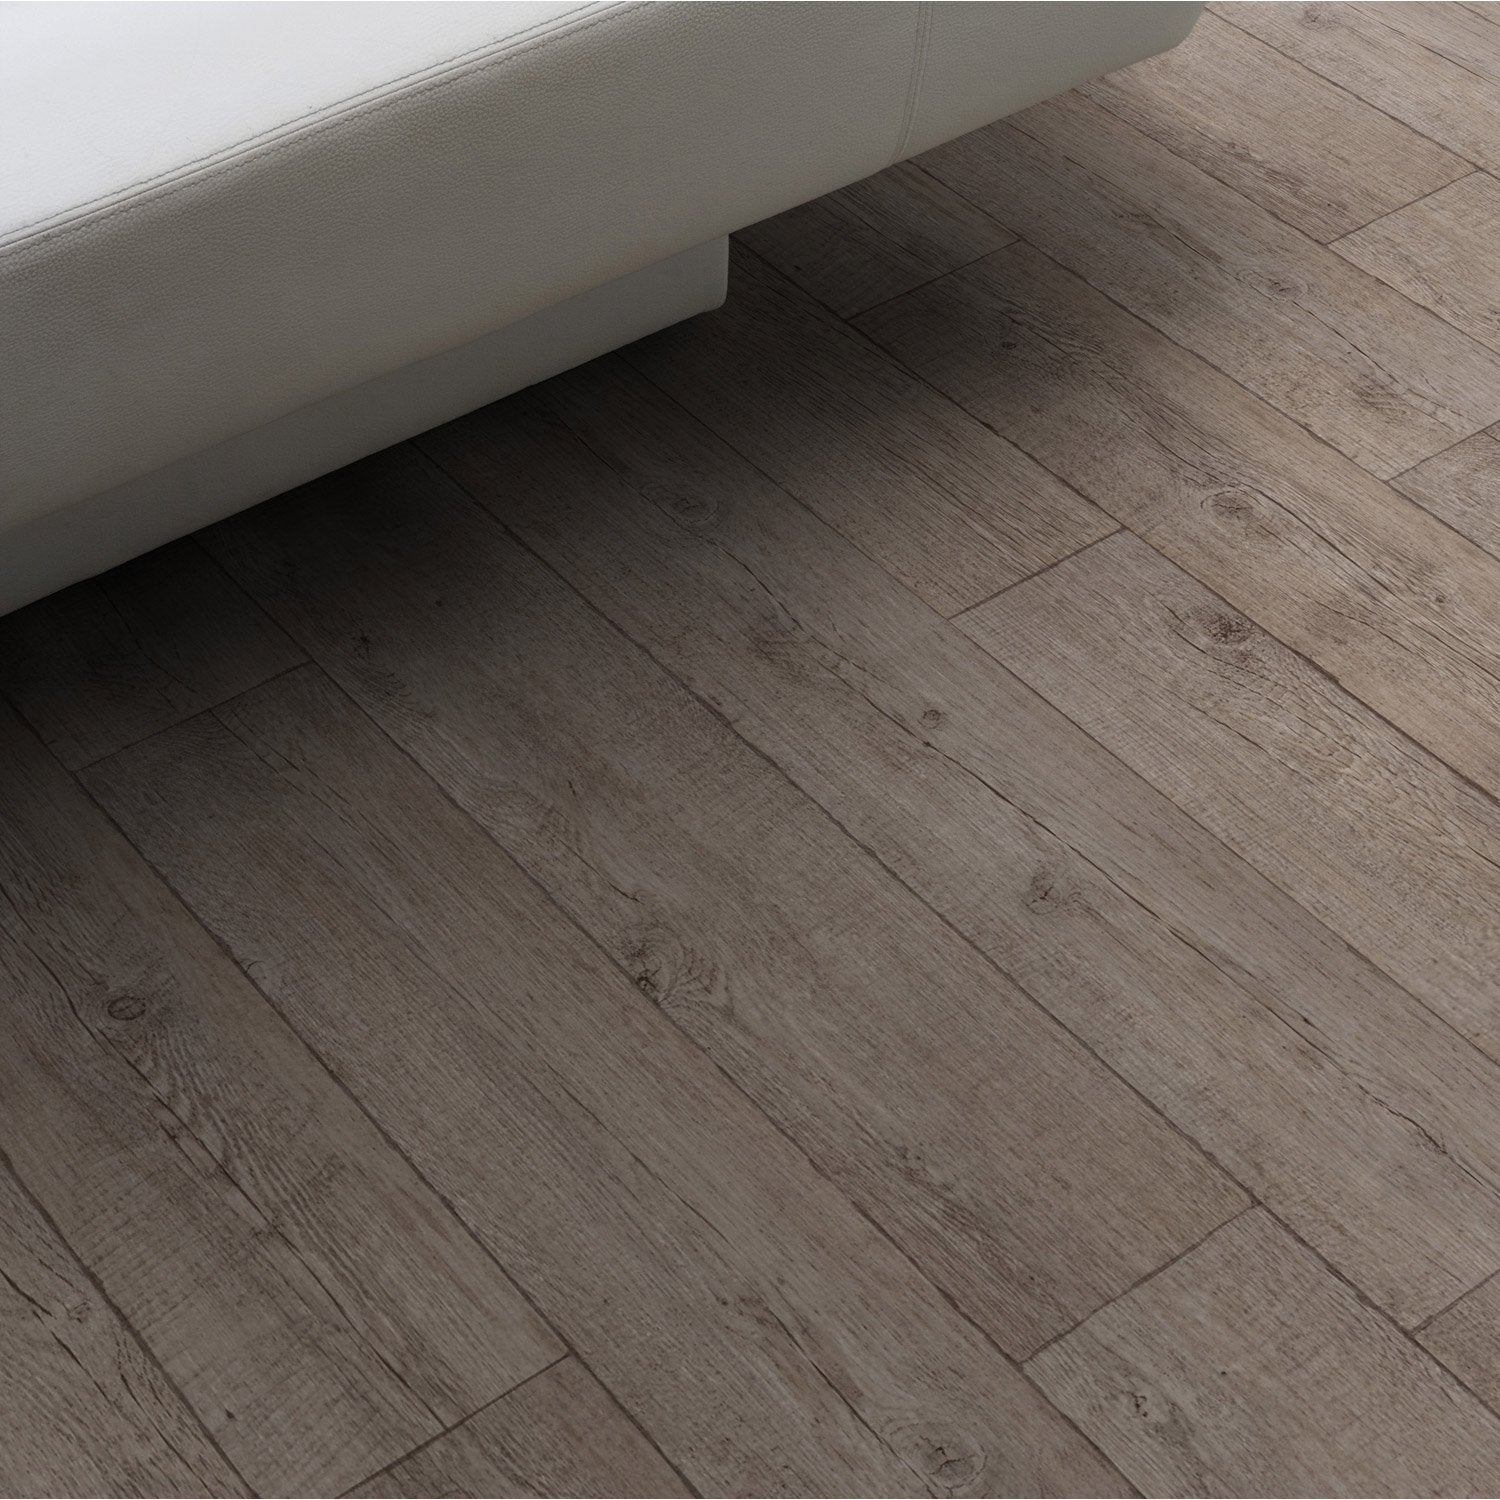 Sol pvc marron farm p can gerflor texline l 4 m leroy merlin - Leroy merlin revetement sol pvc ...